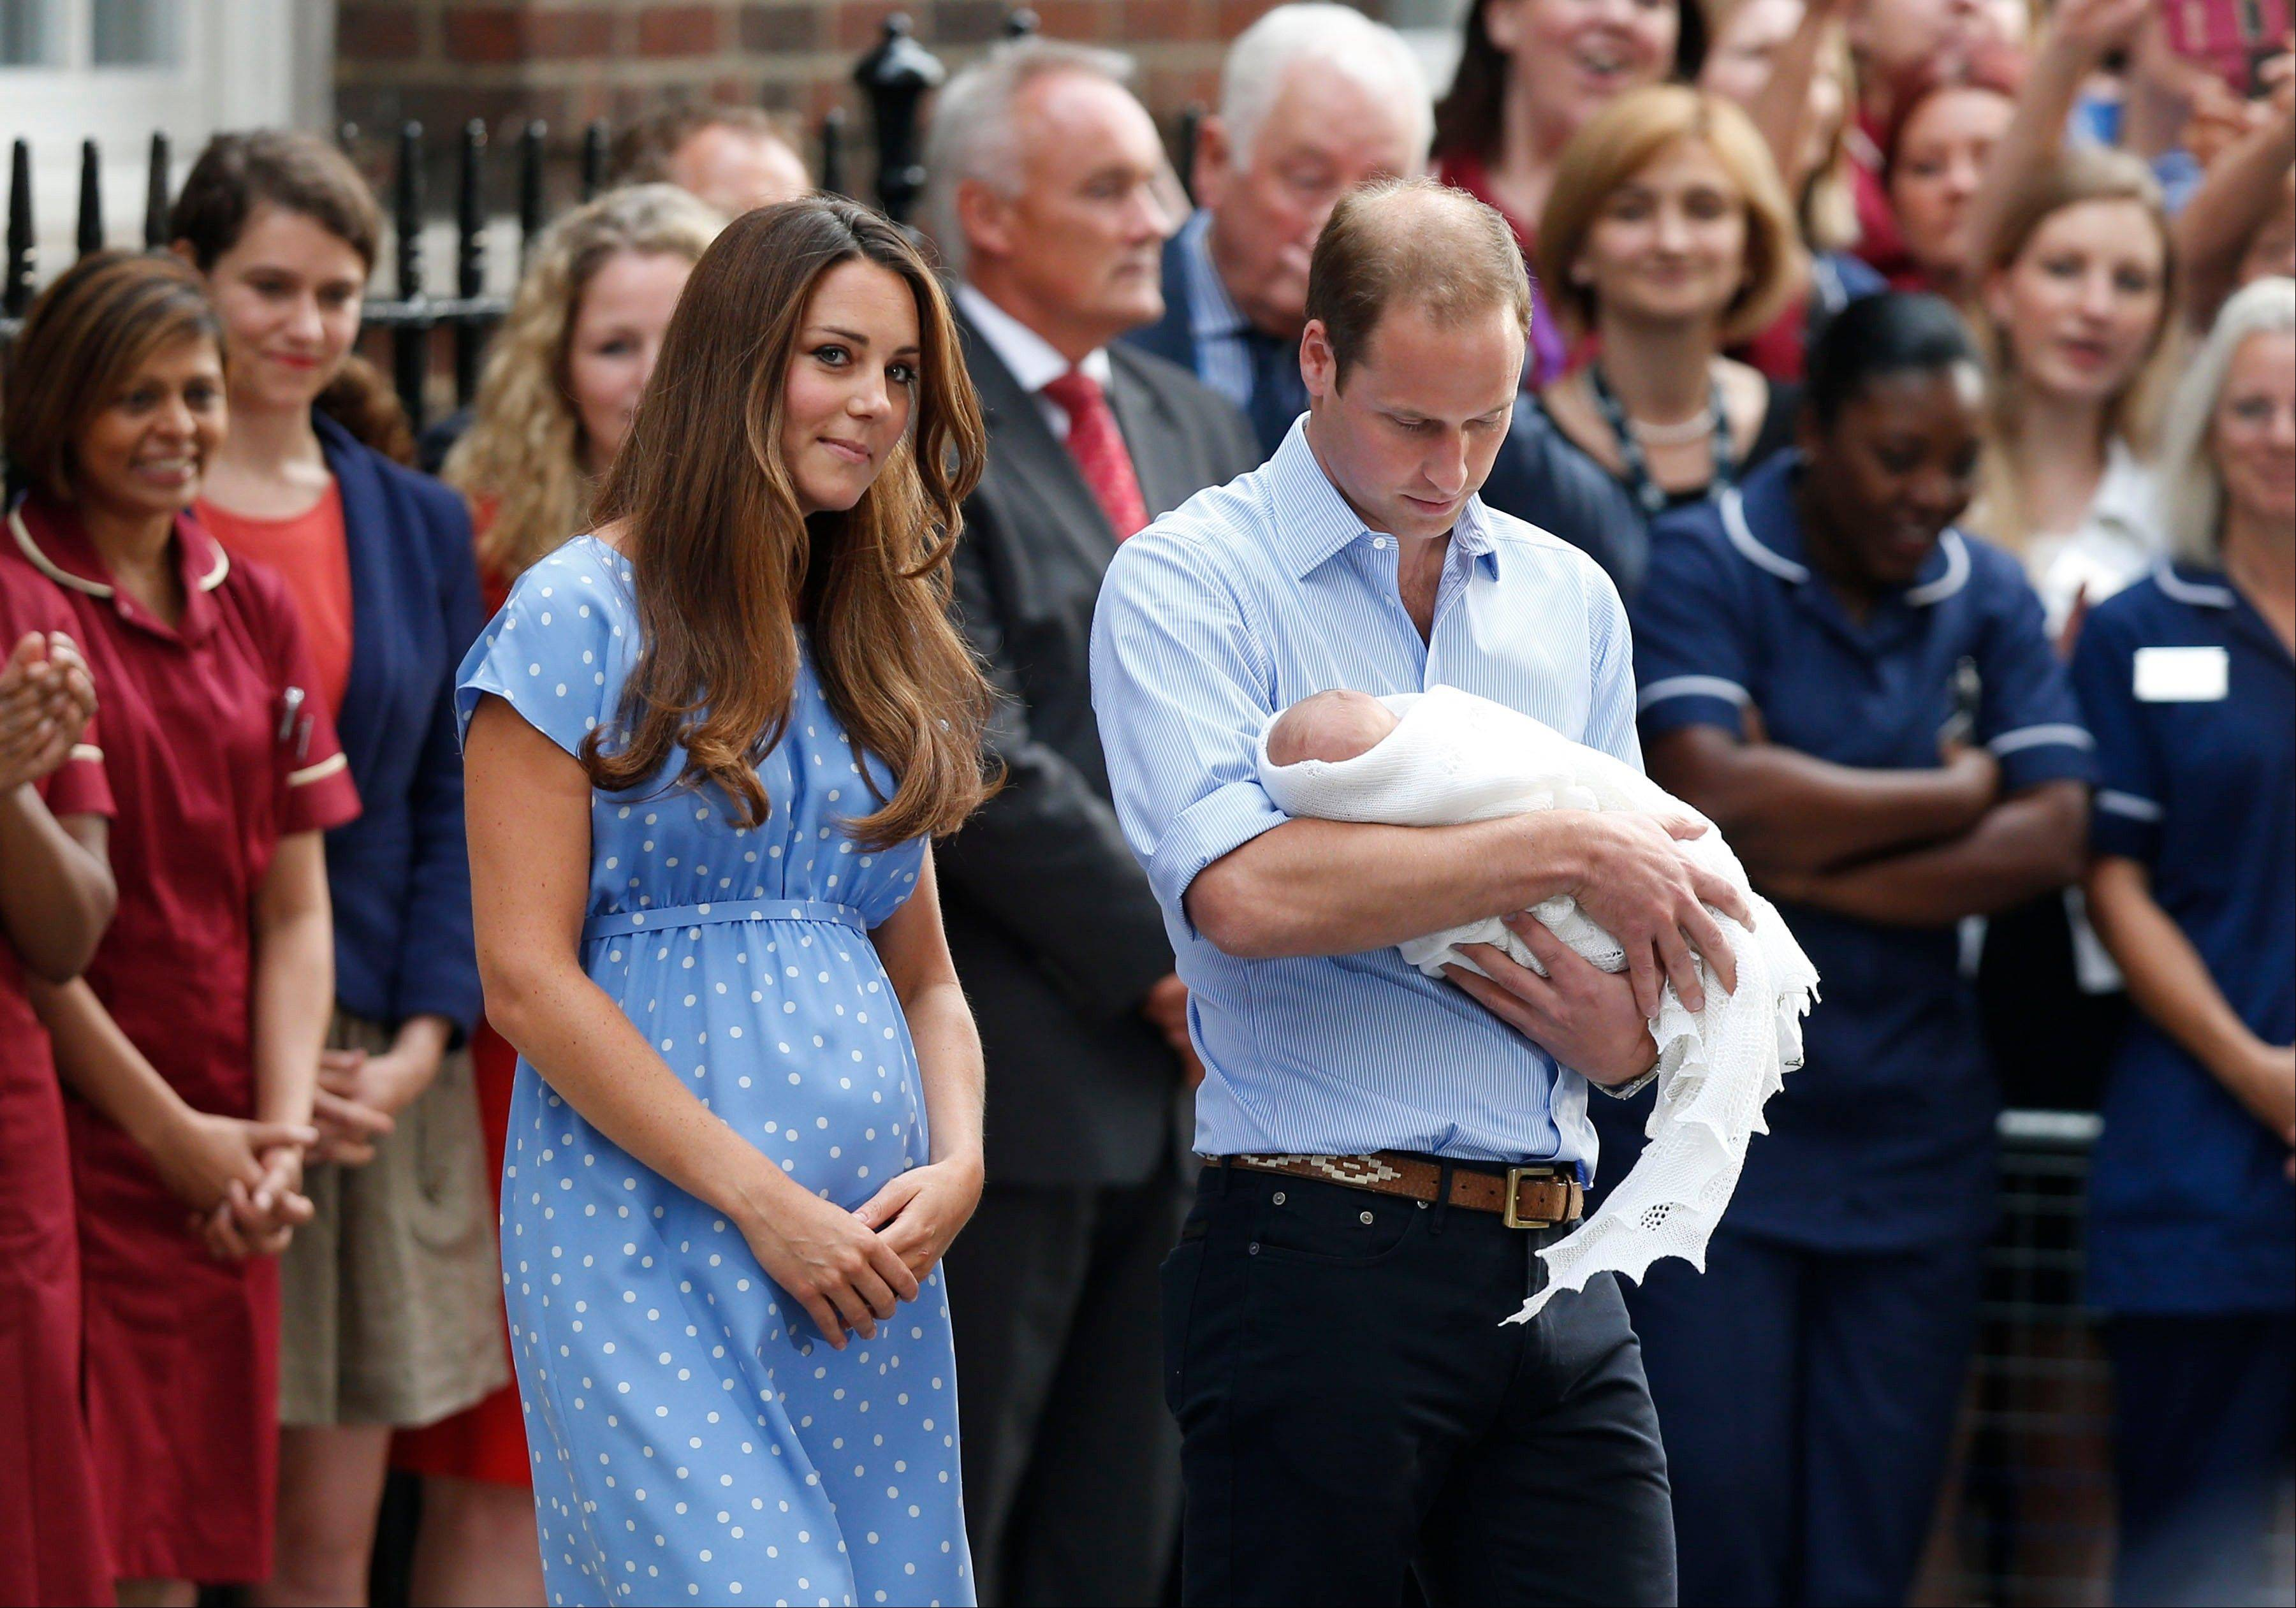 The former Kate Middleton, in her first public appearance after giving birth, wore a dress that did not camouflage her belly, and many women are applauding her choice.